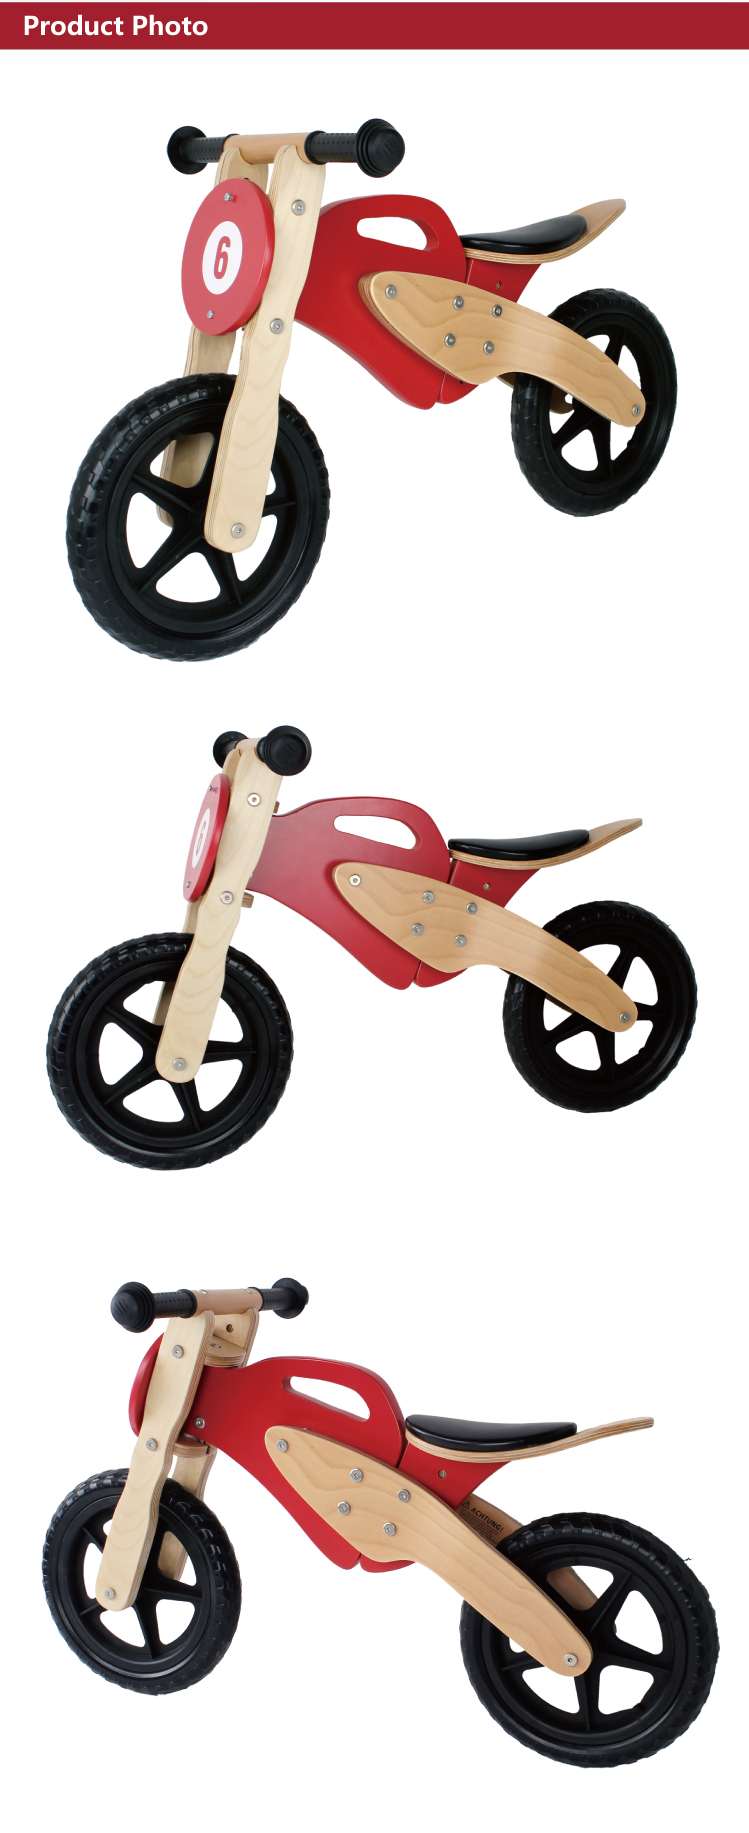 "12"" Motor Bikes with Light use Plastic Wheel Wooden Balance Bicycle as Child Toy"